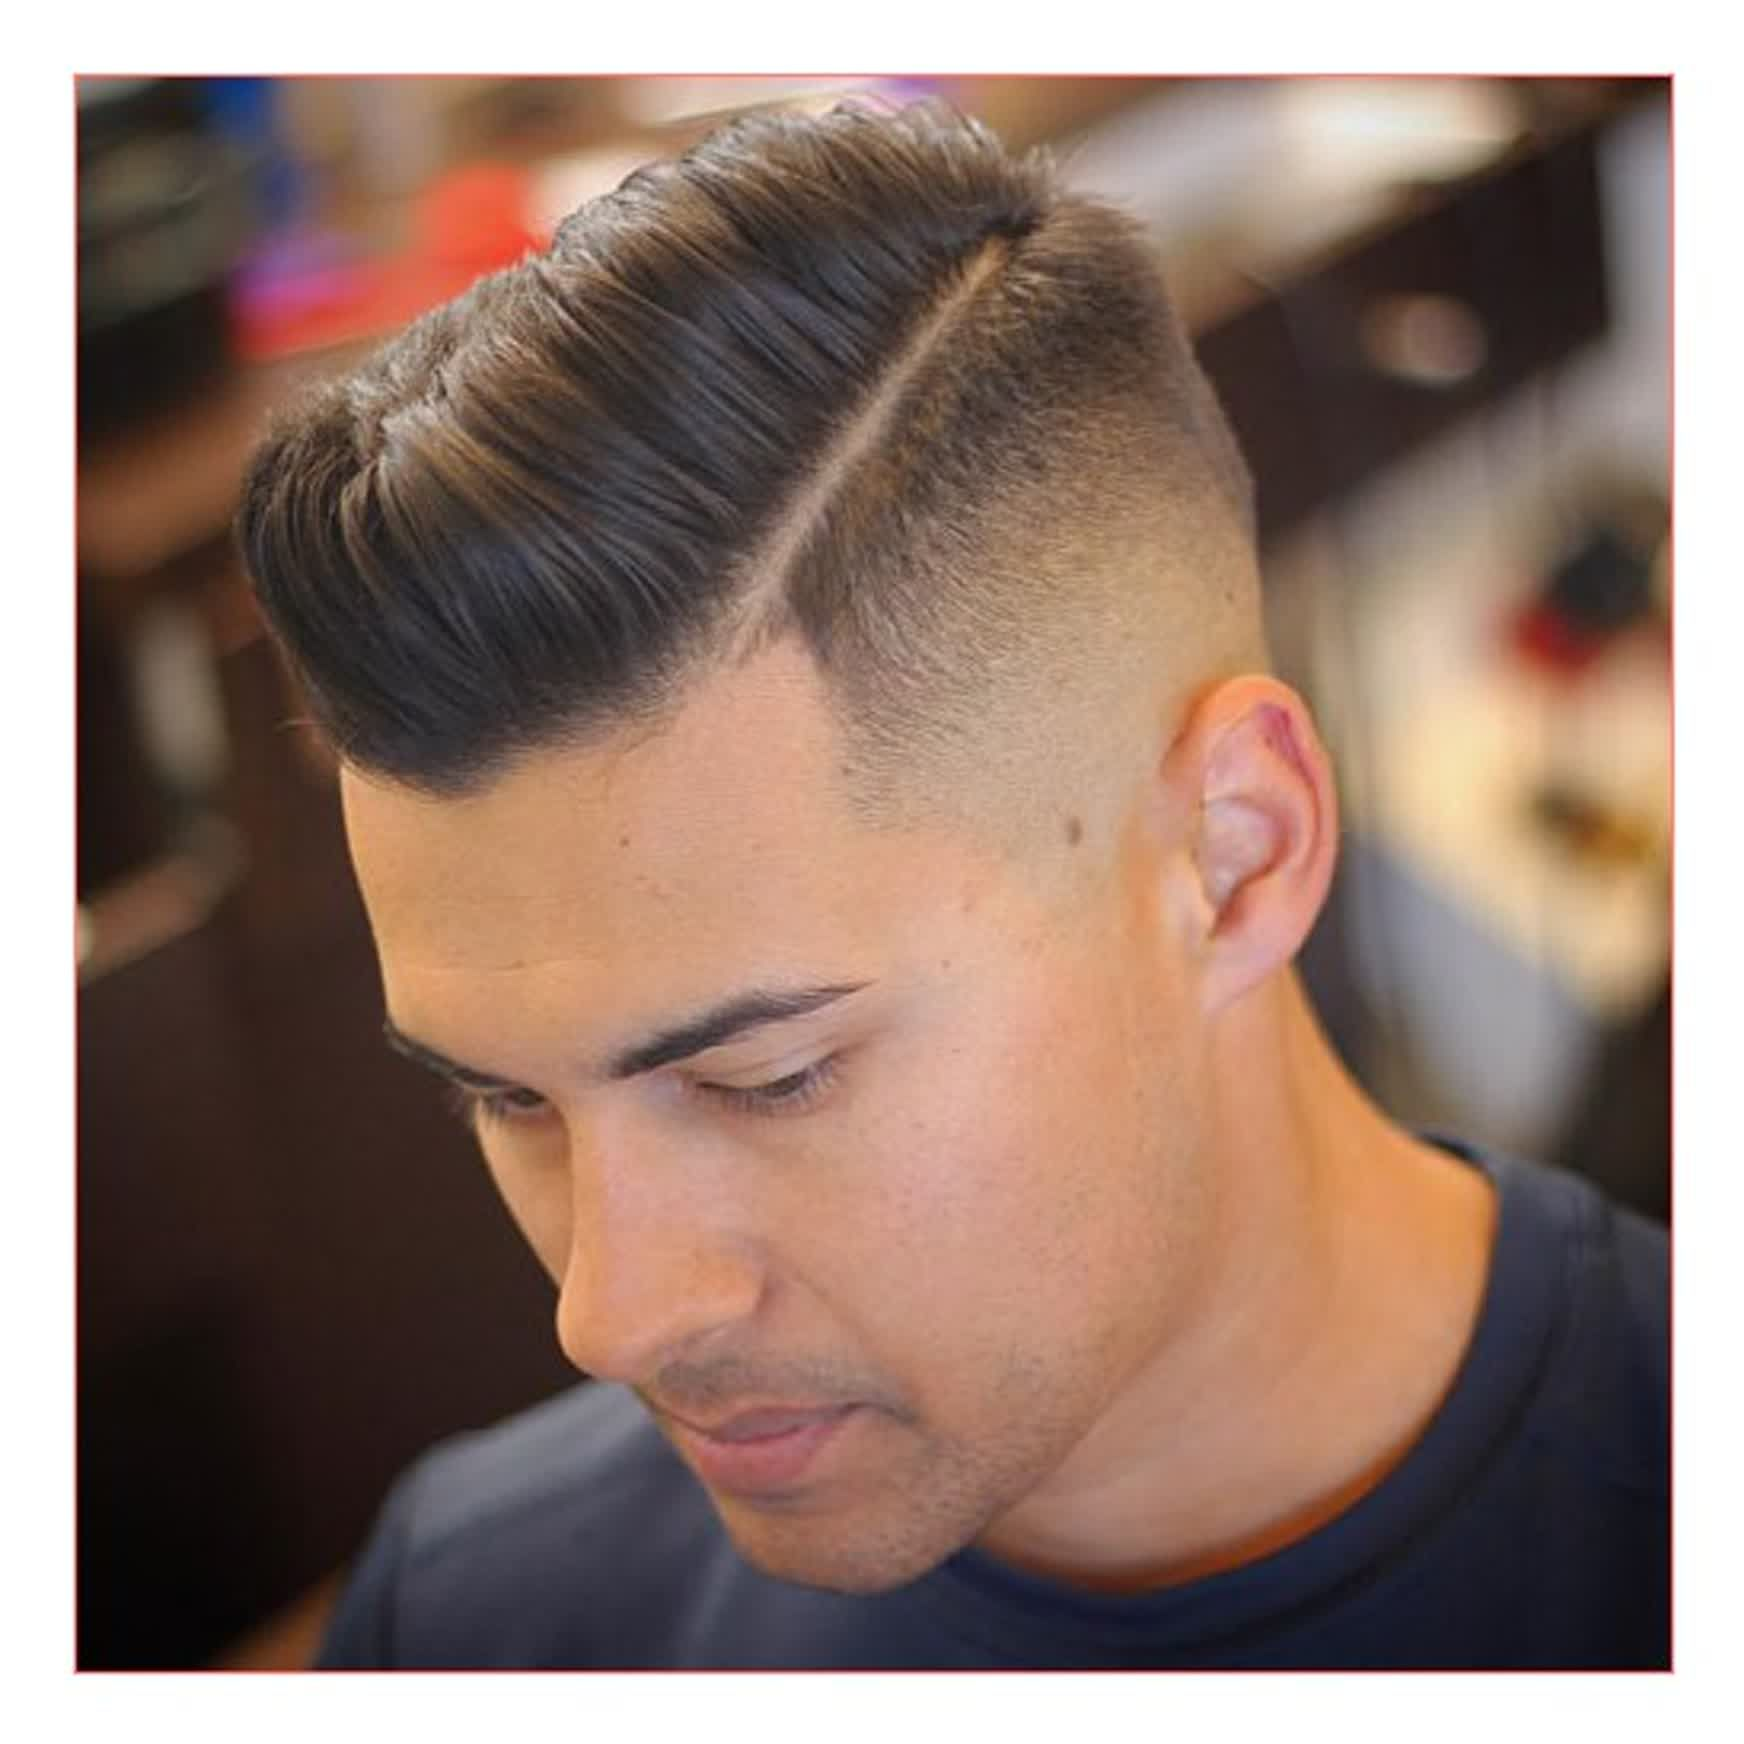 Image Result For Fade Haircuts For Teenage Guys Fade Hair Cuts